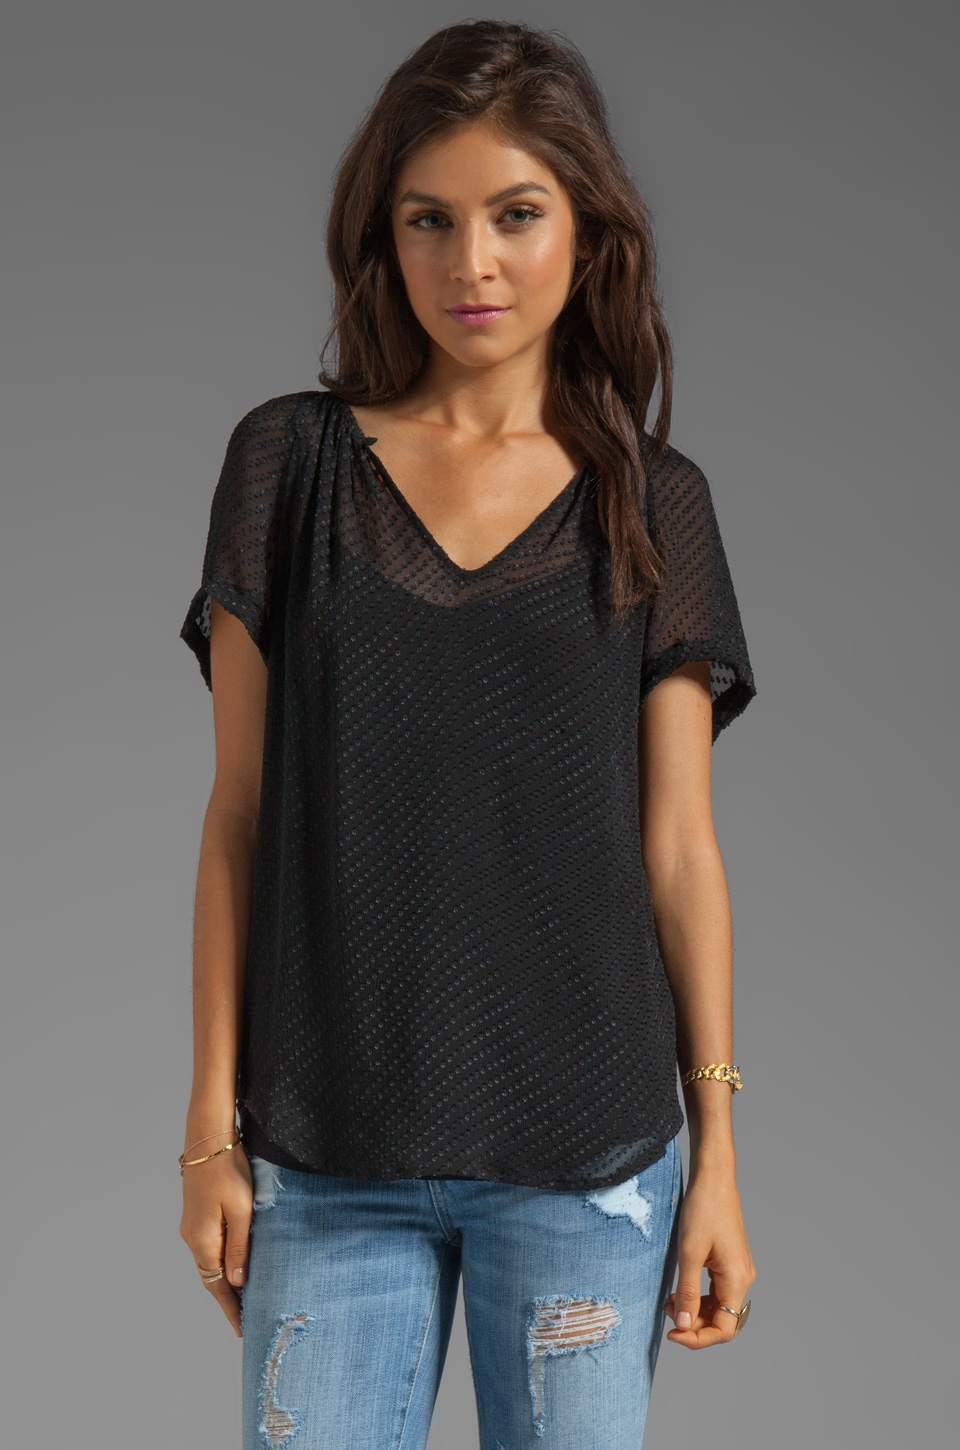 Ella Moss Parisienne Short Sleeve Silk Top in Black